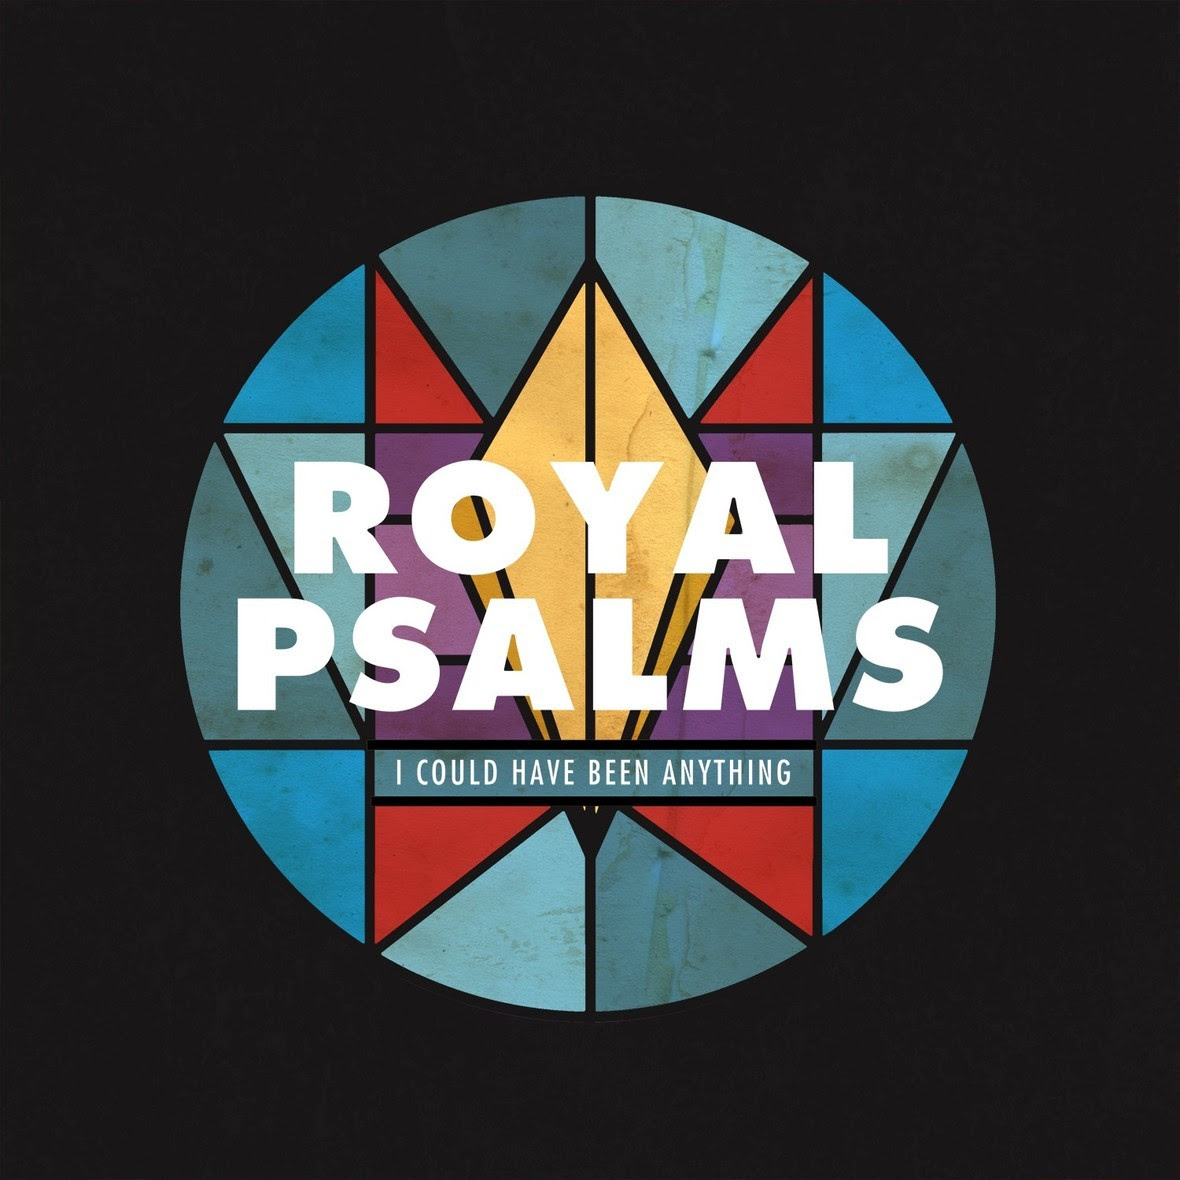 royal psalms cover art